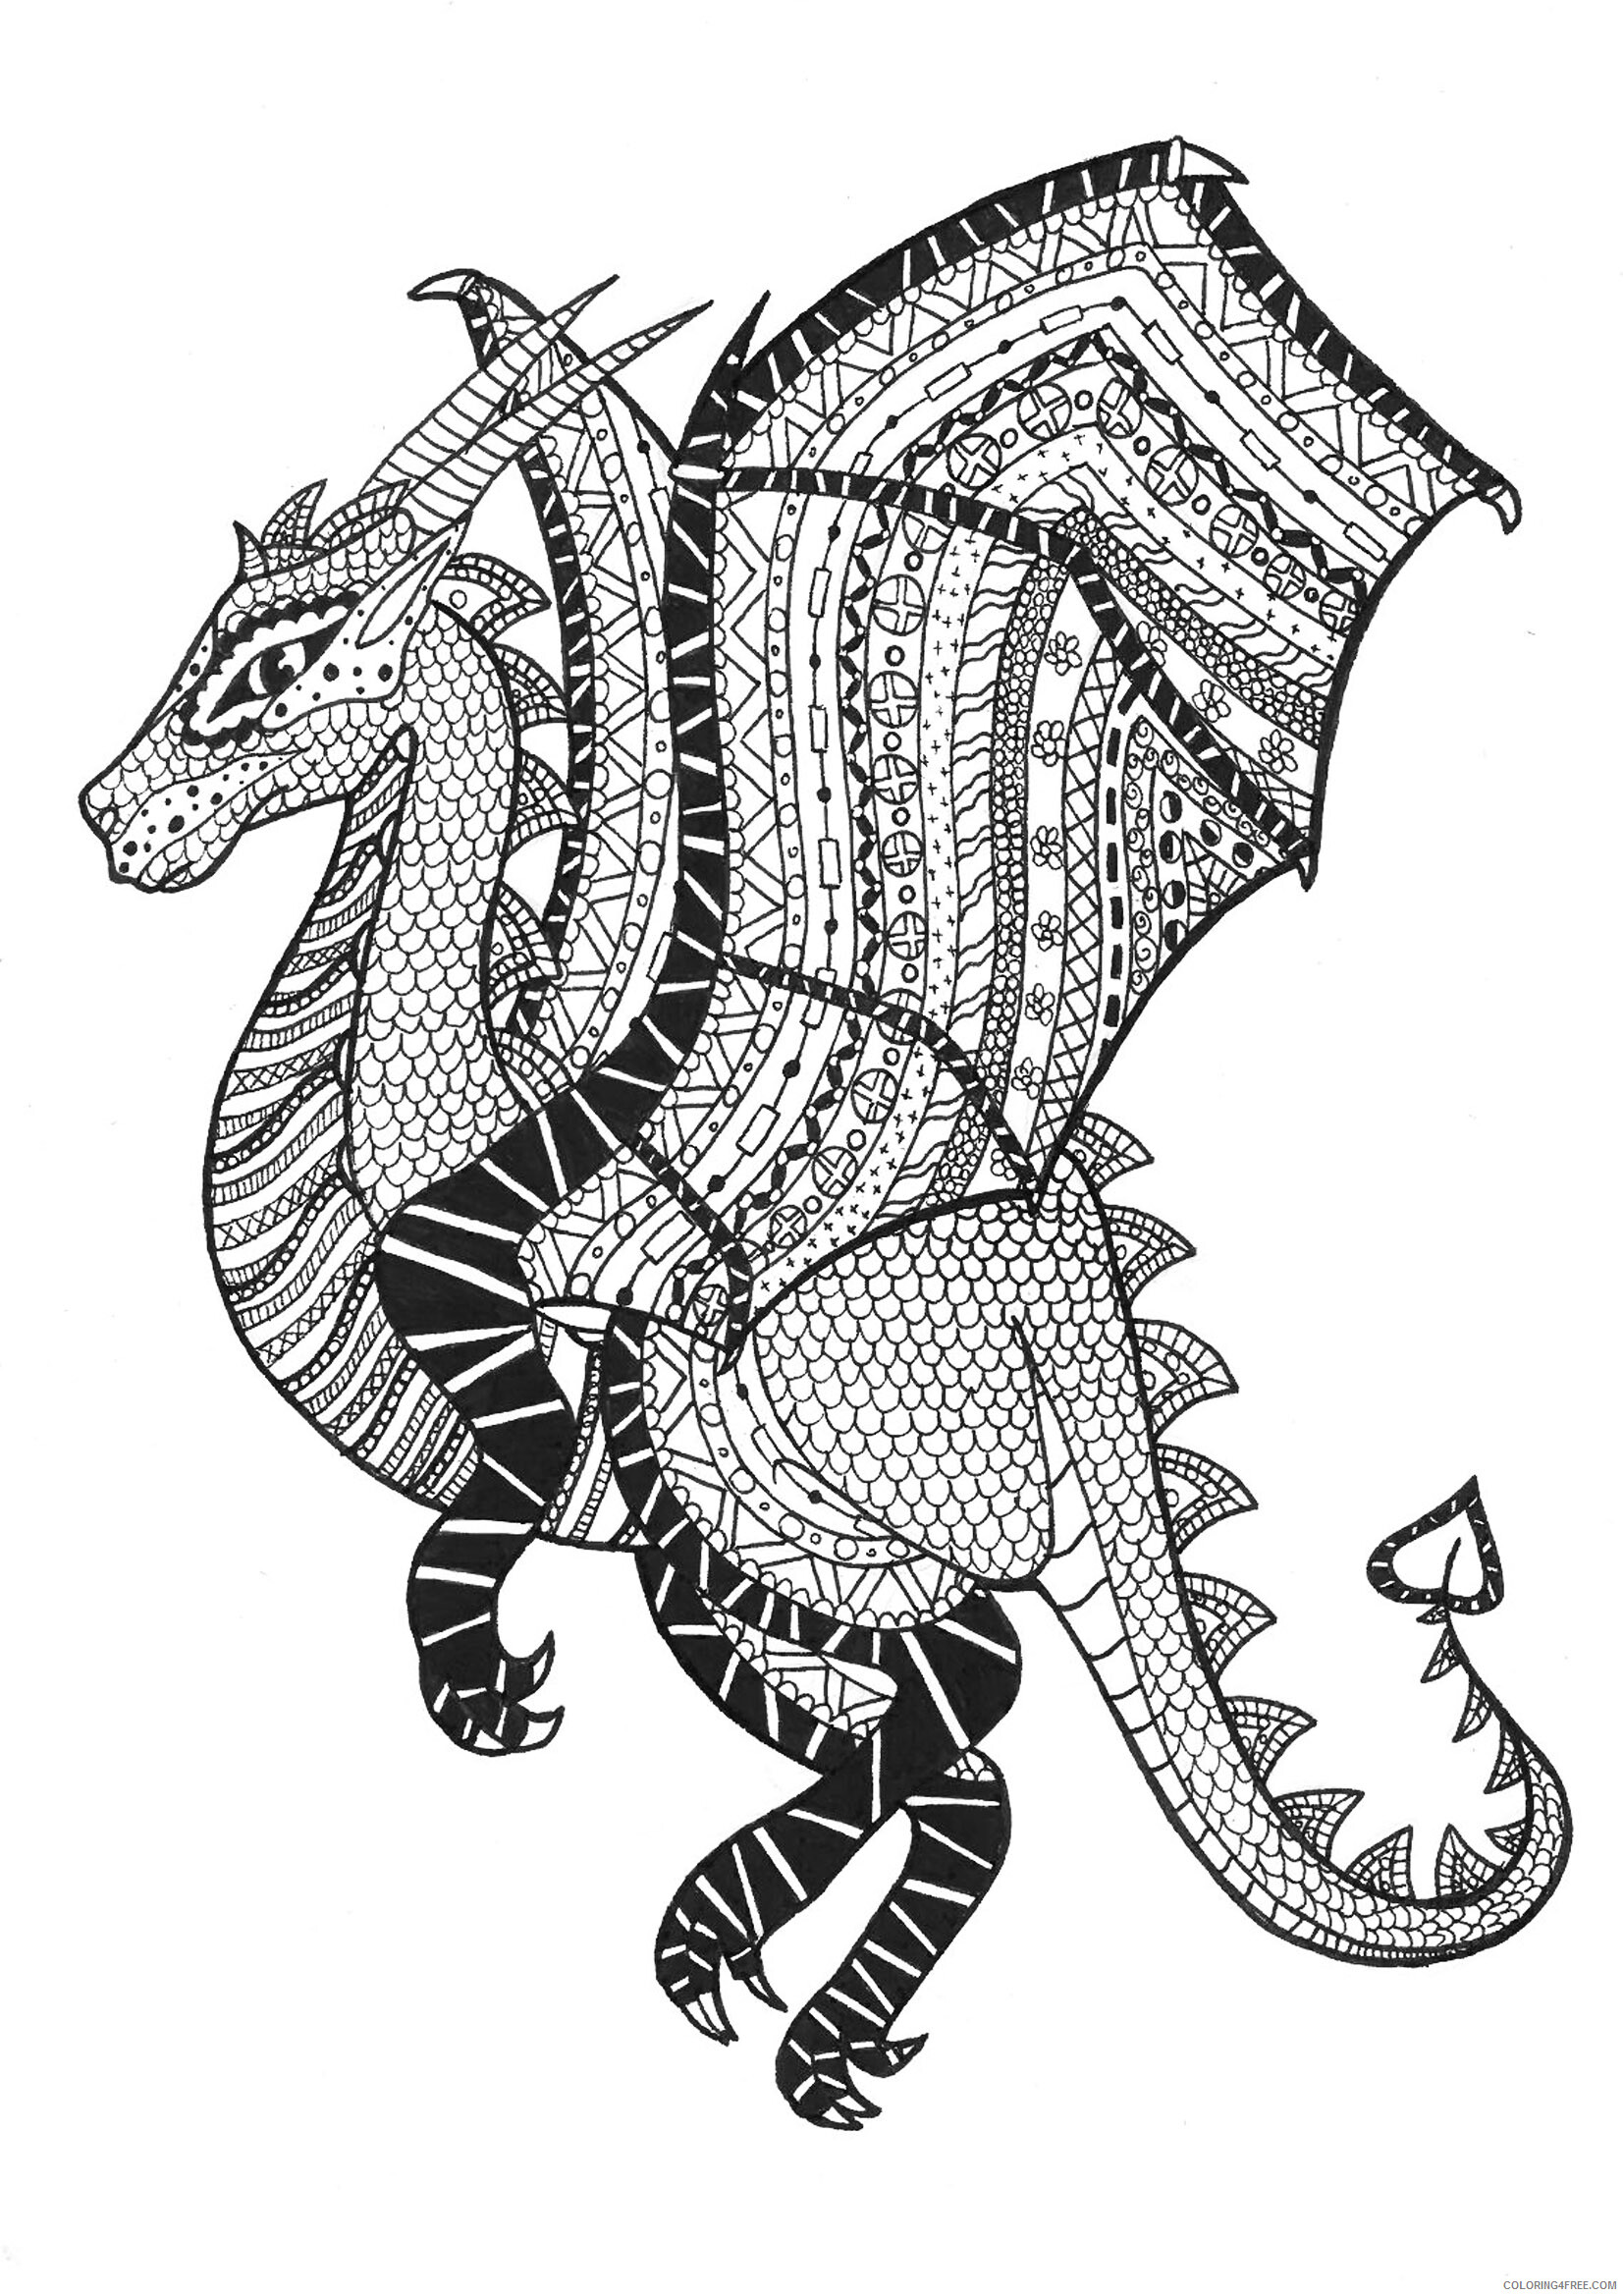 Fantasy Dragons Coloring Pages Zen Dragon Adult Printable 2021 2598 Coloring4free